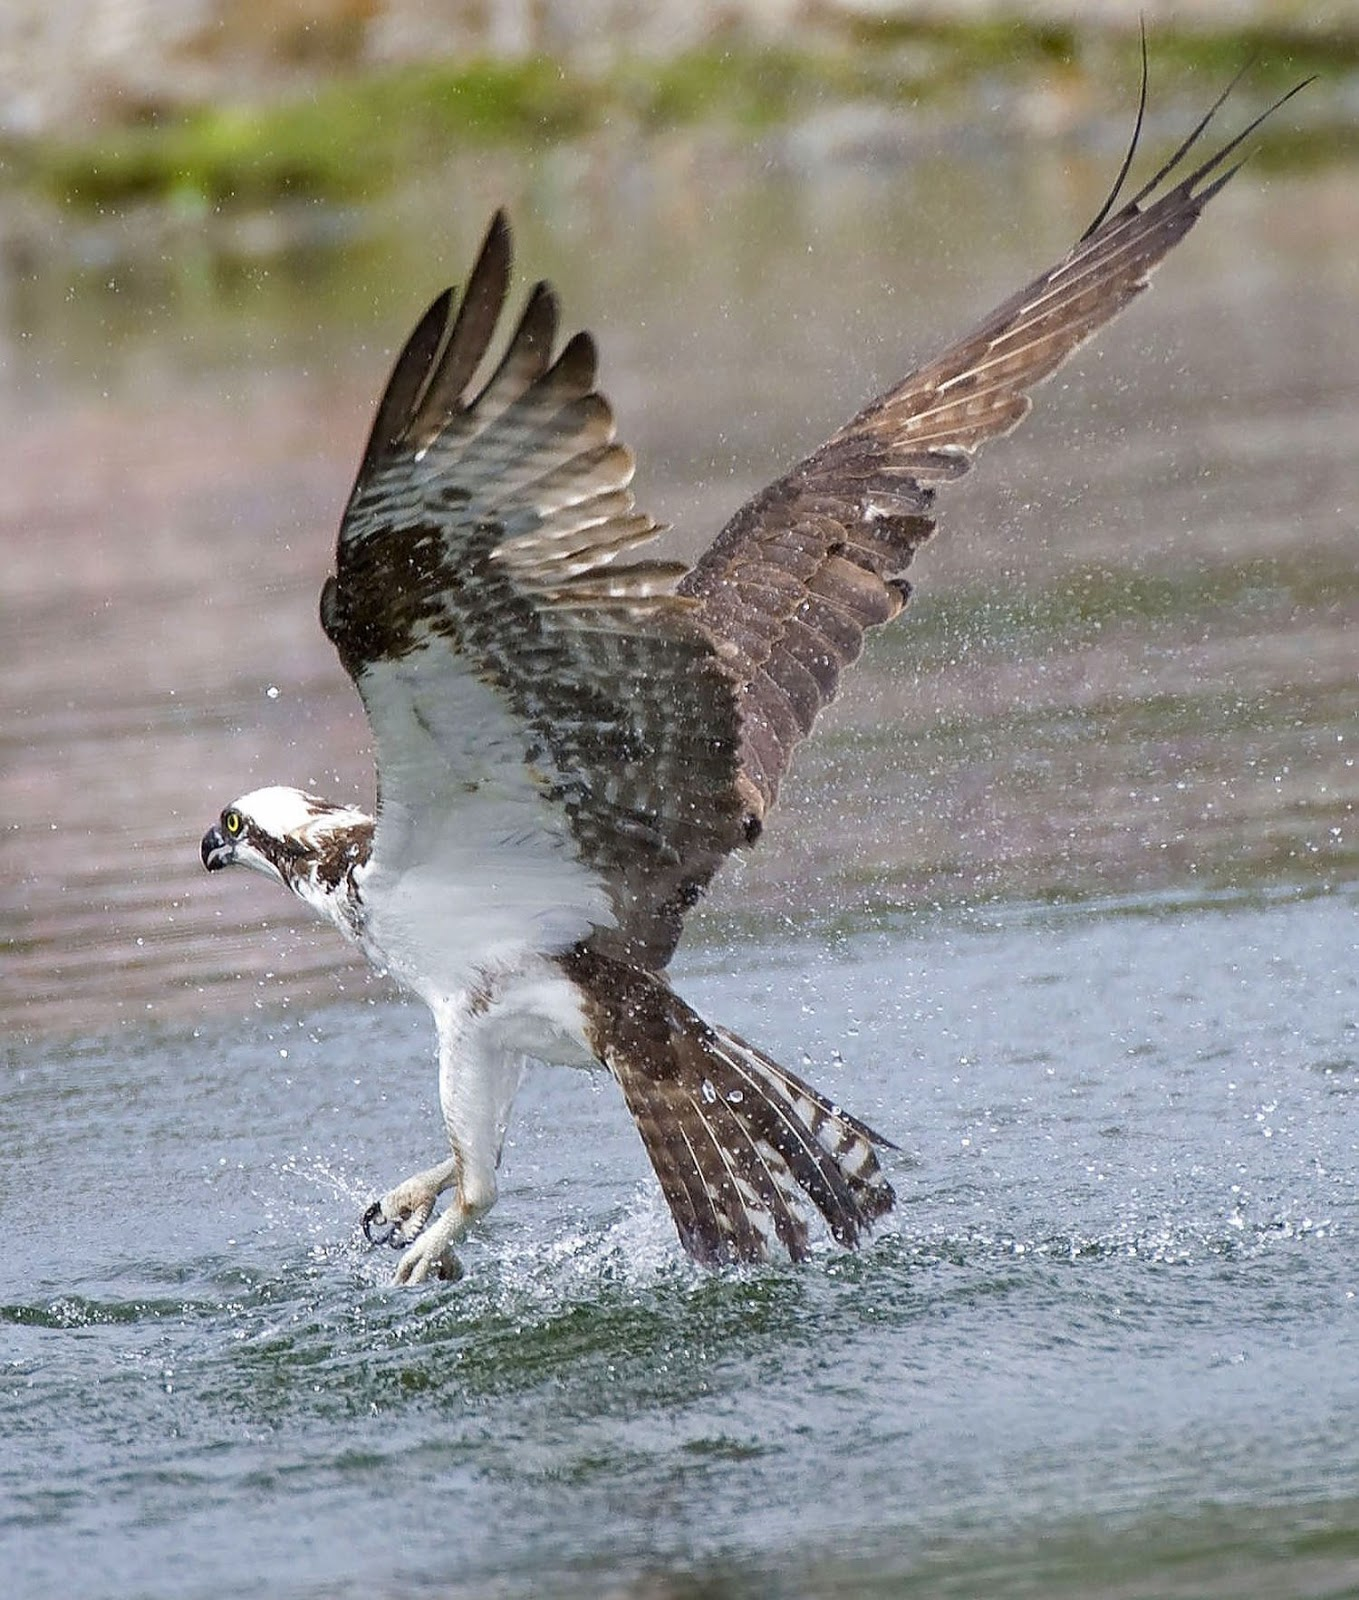 Shoreline area news for the birds osprey the other sea hawk for Osprey catching fish